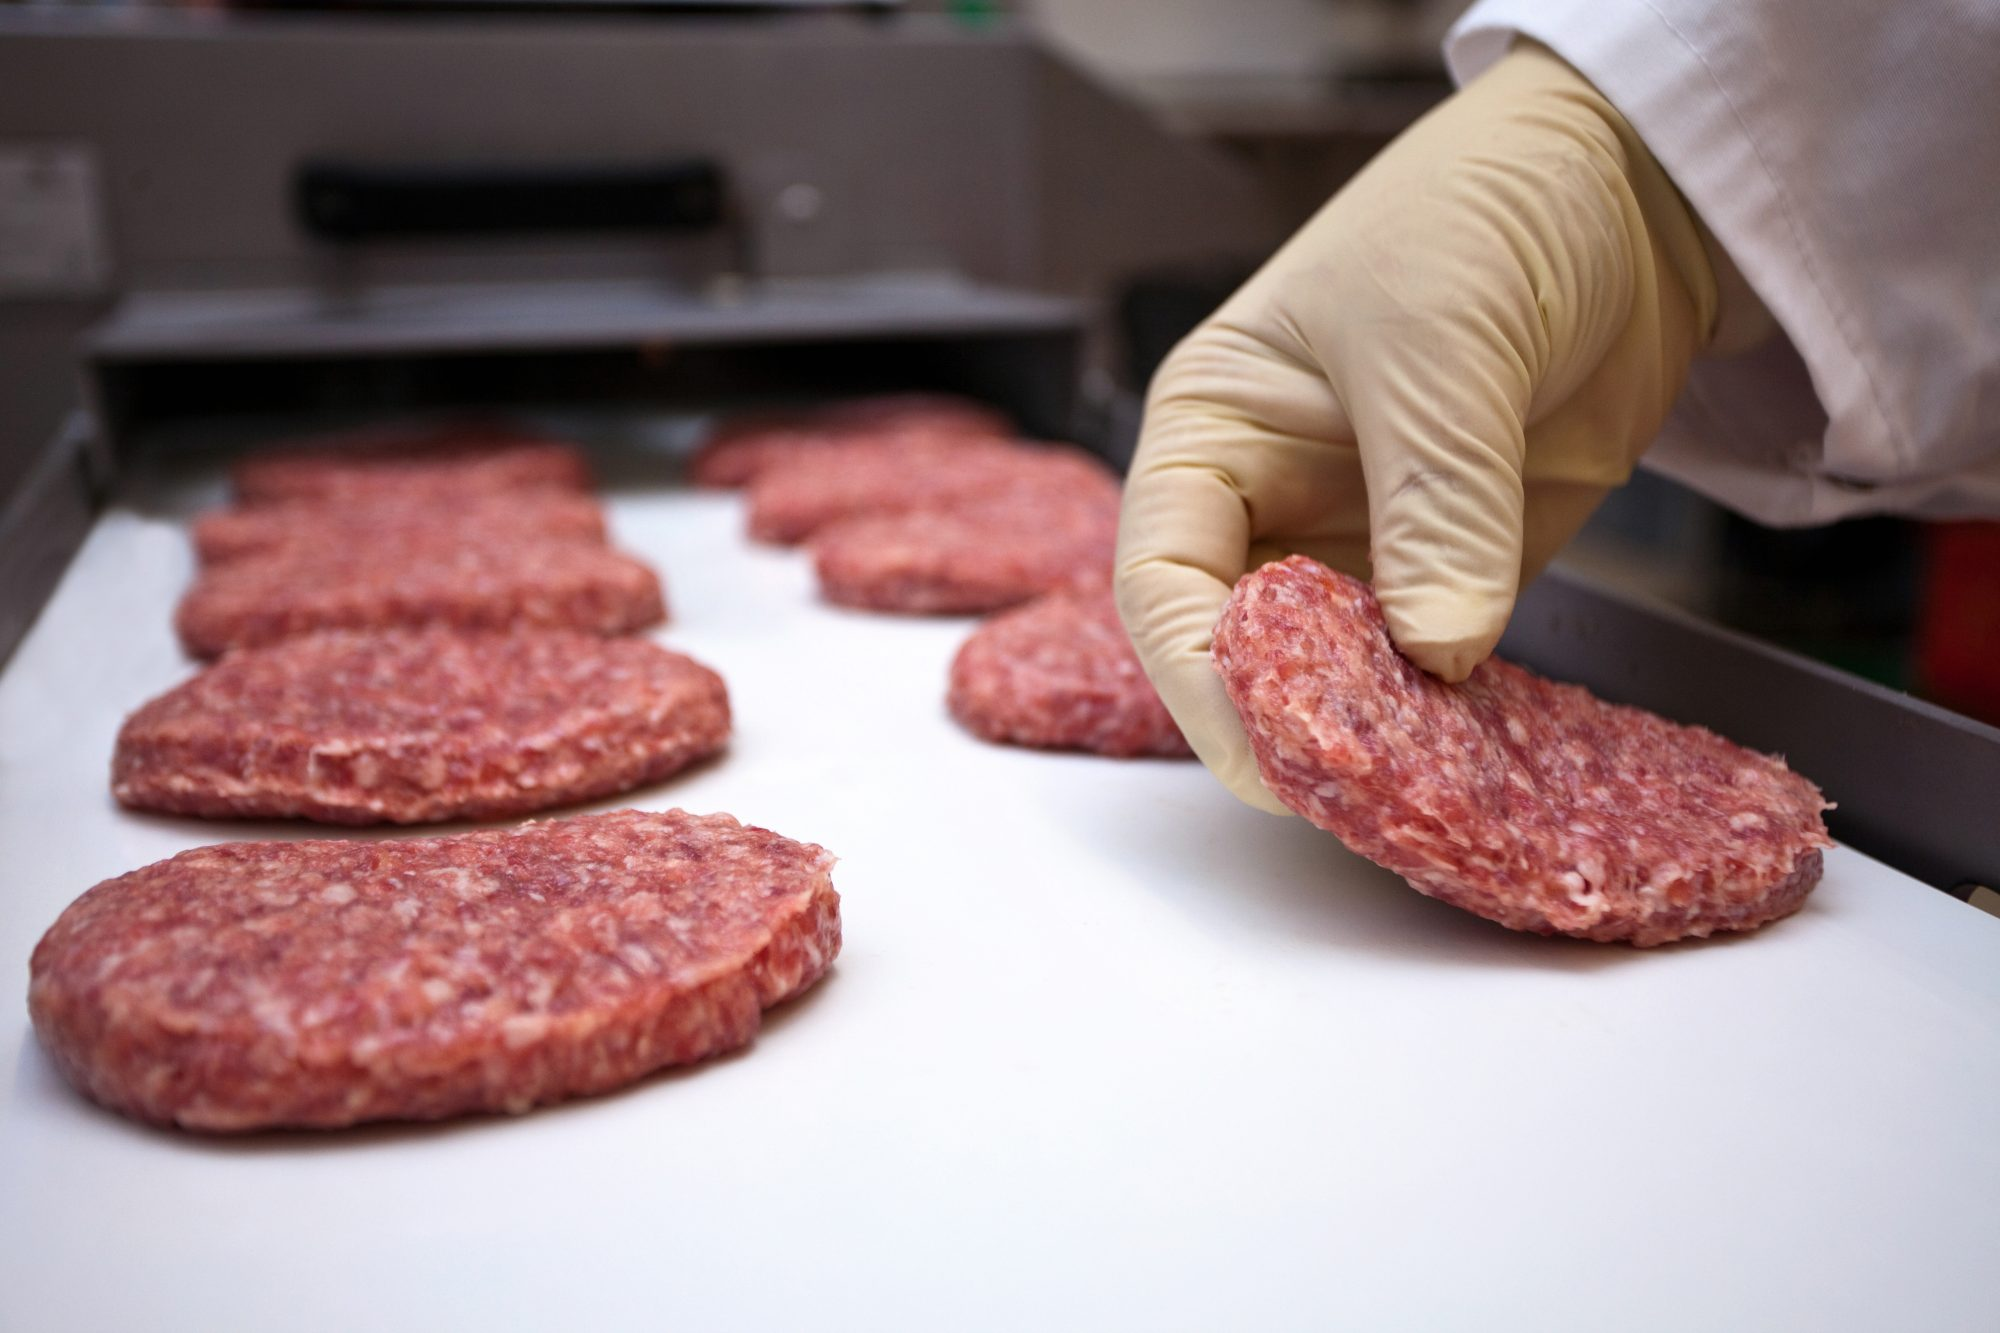 Meat production